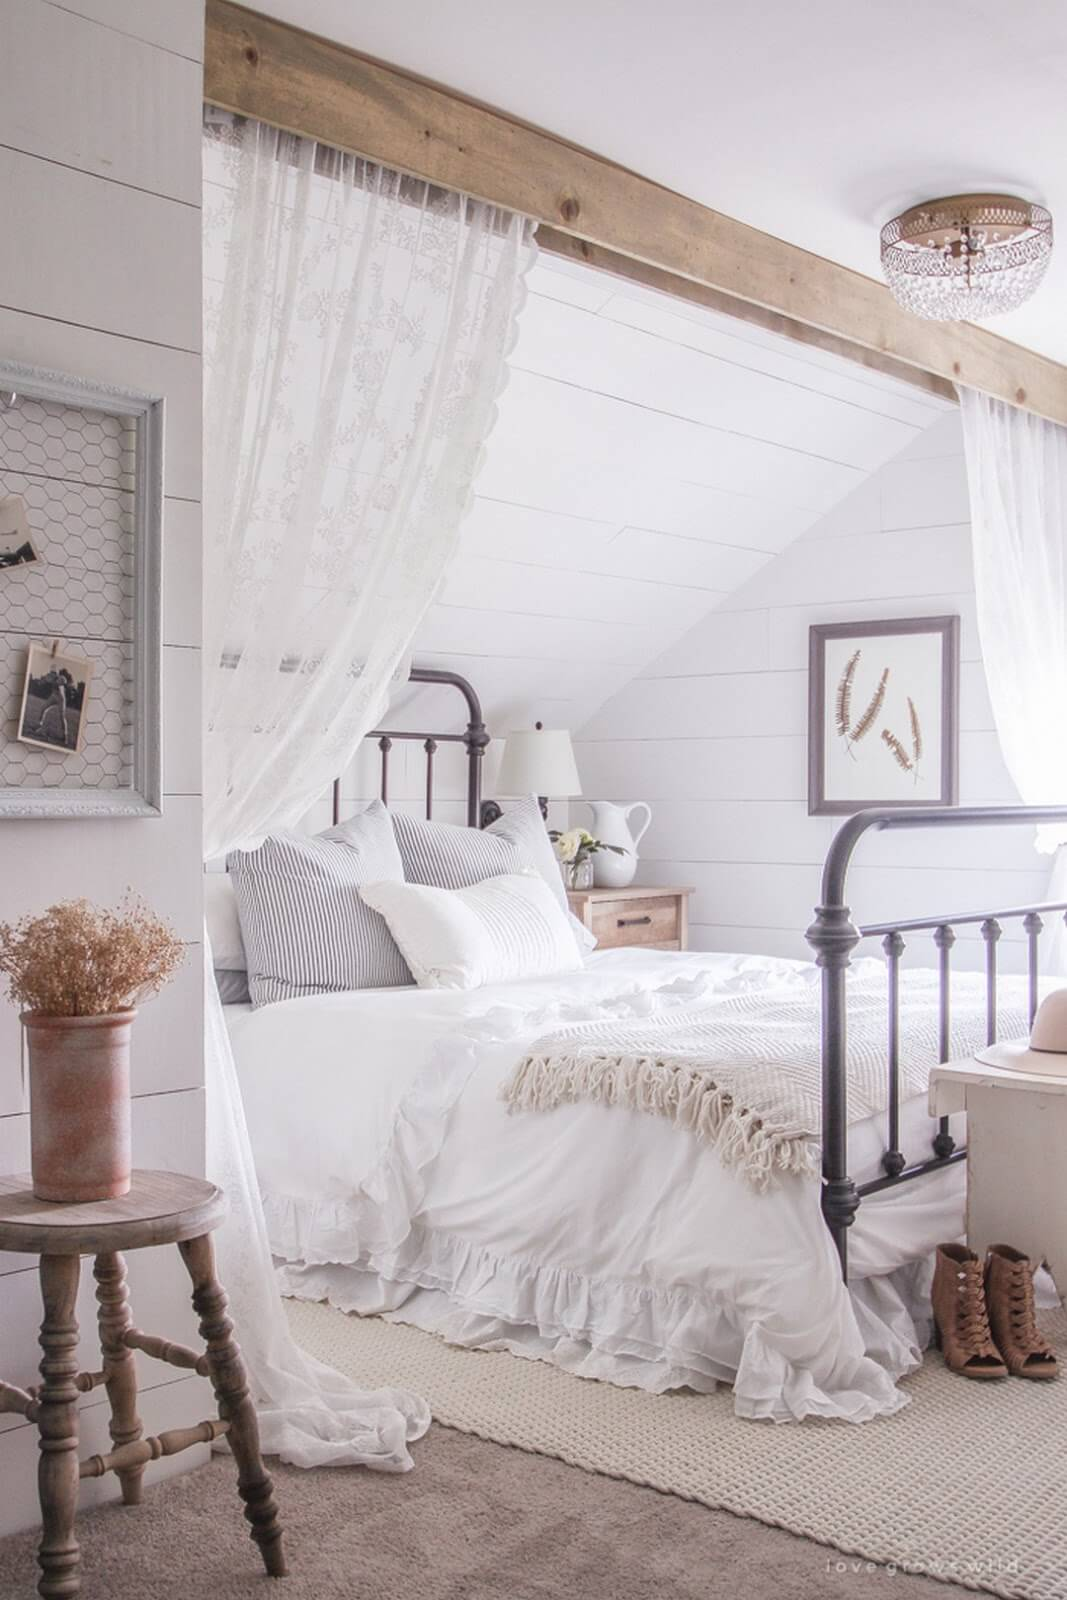 27 Best Rustic Shiplap Decor Ideas And Designs For